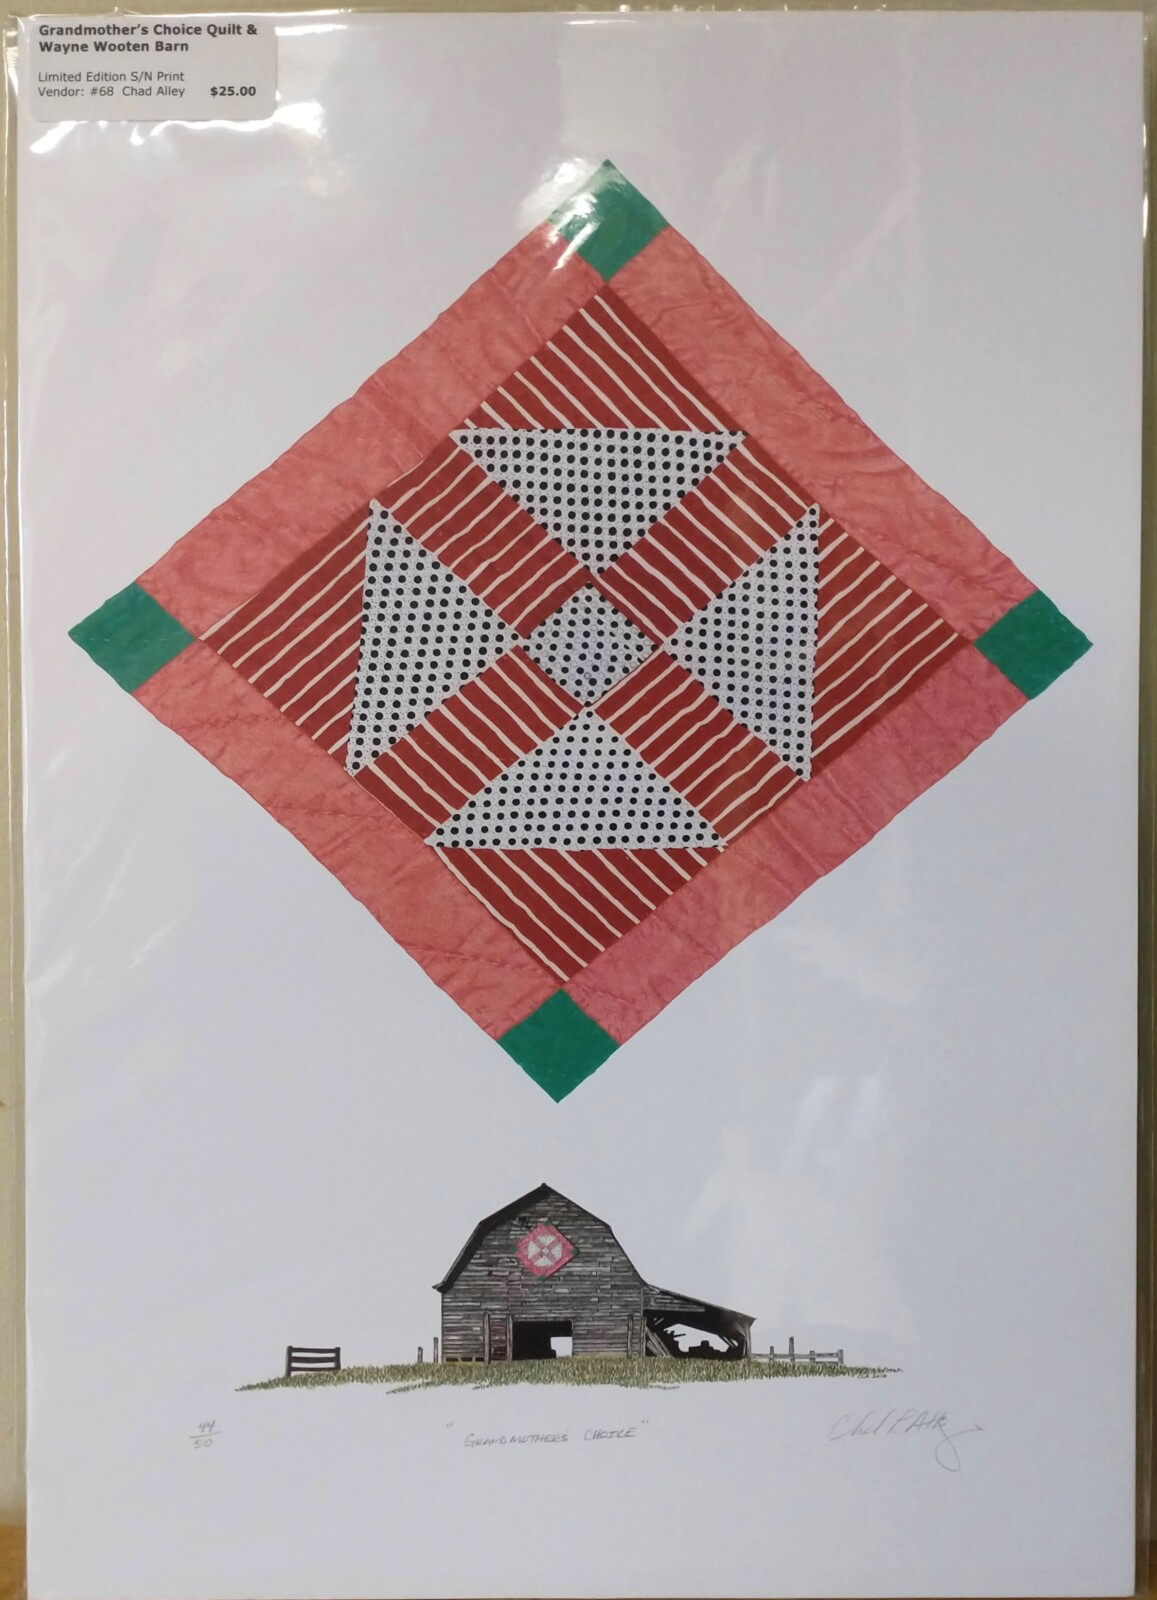 Grandmother's Choice Quilt & Wayne Wooten Barn Print